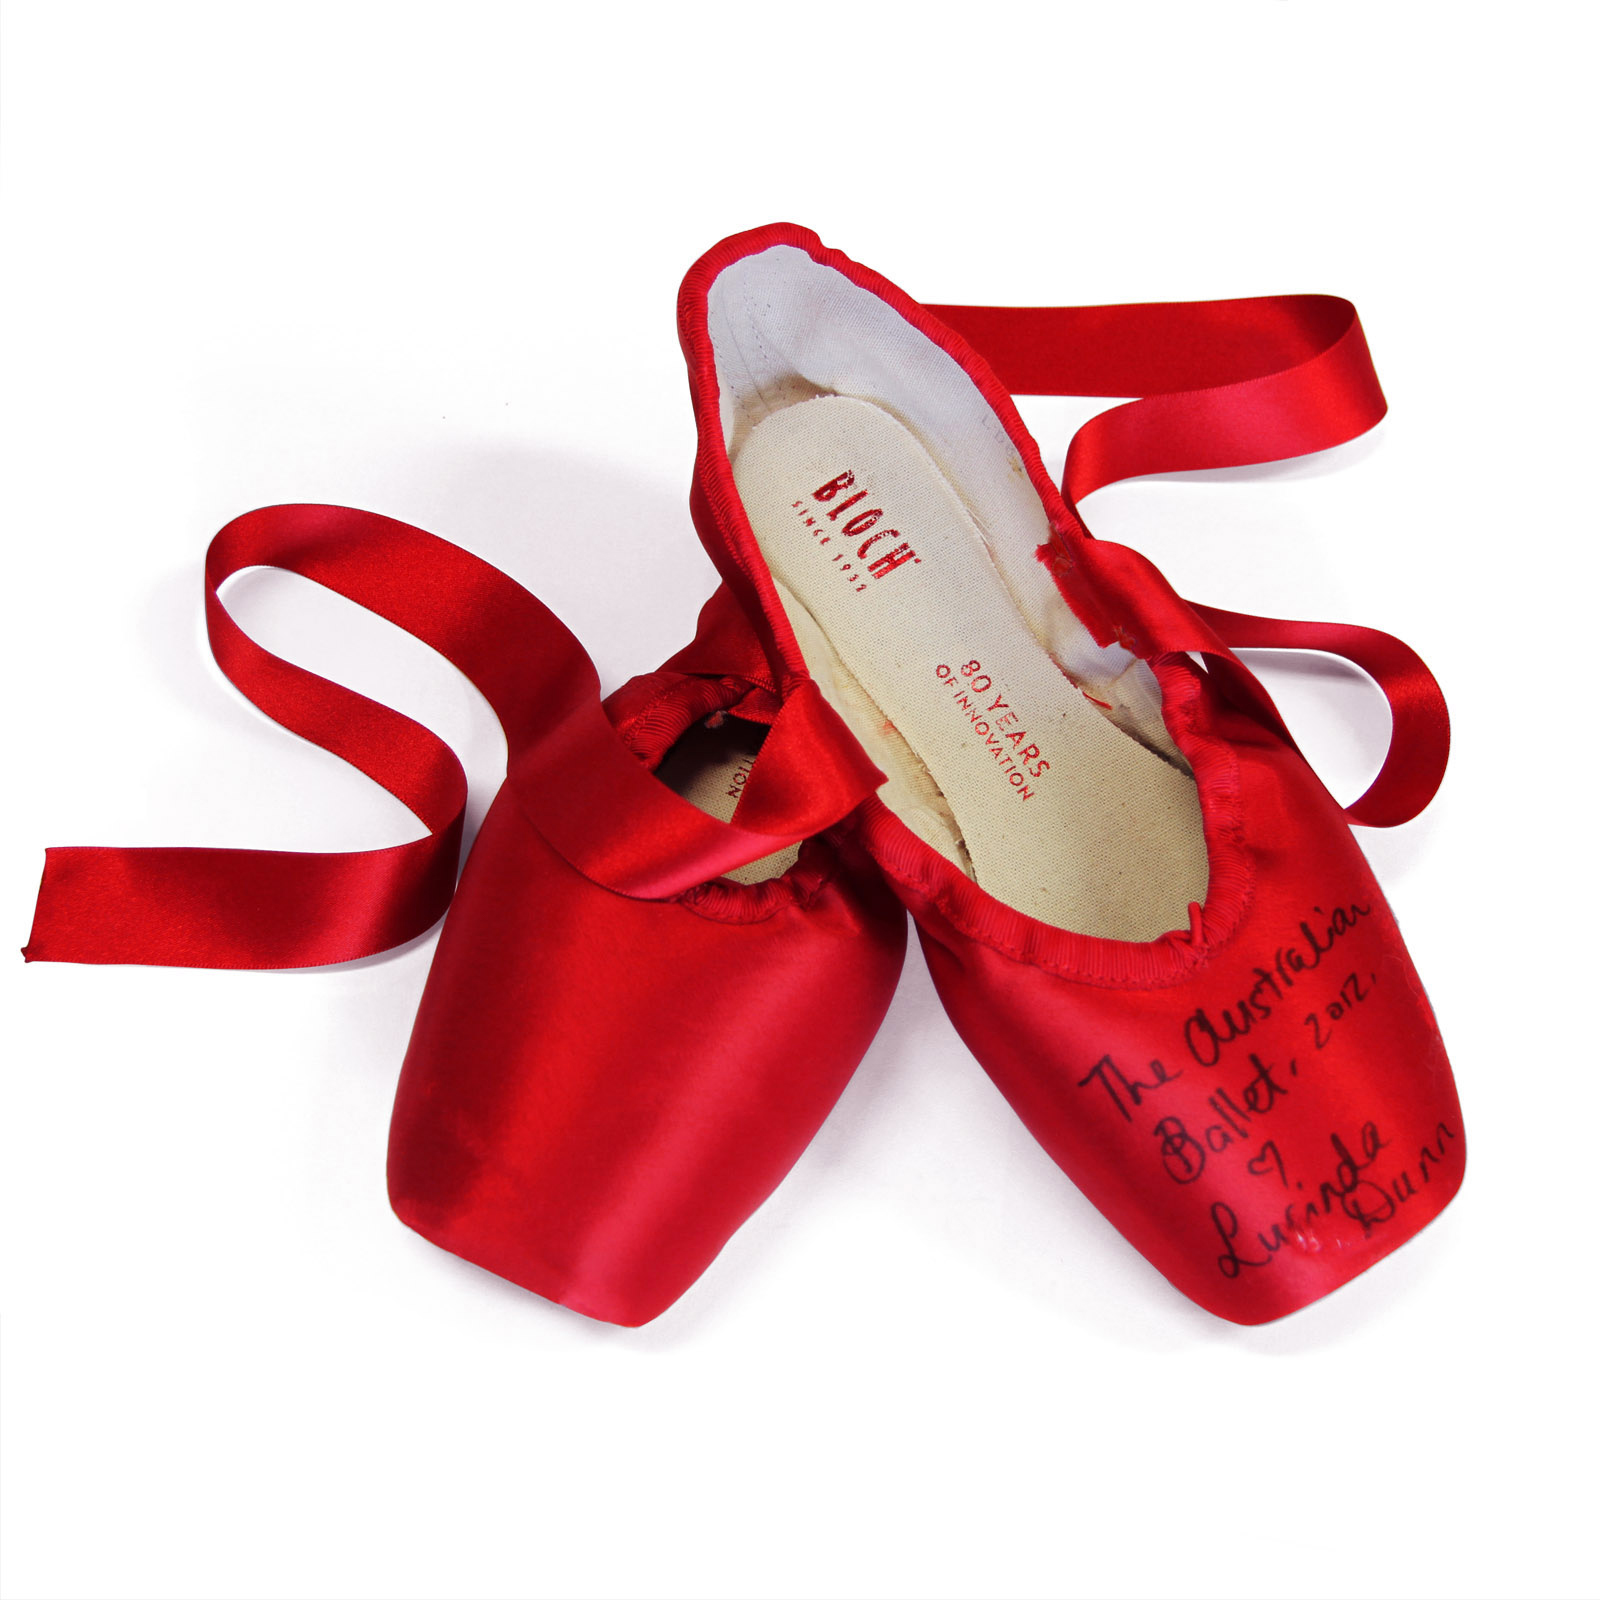 Red pointe shoes: En Points, Pointe Shoes, Points Shoes, Red Shoes